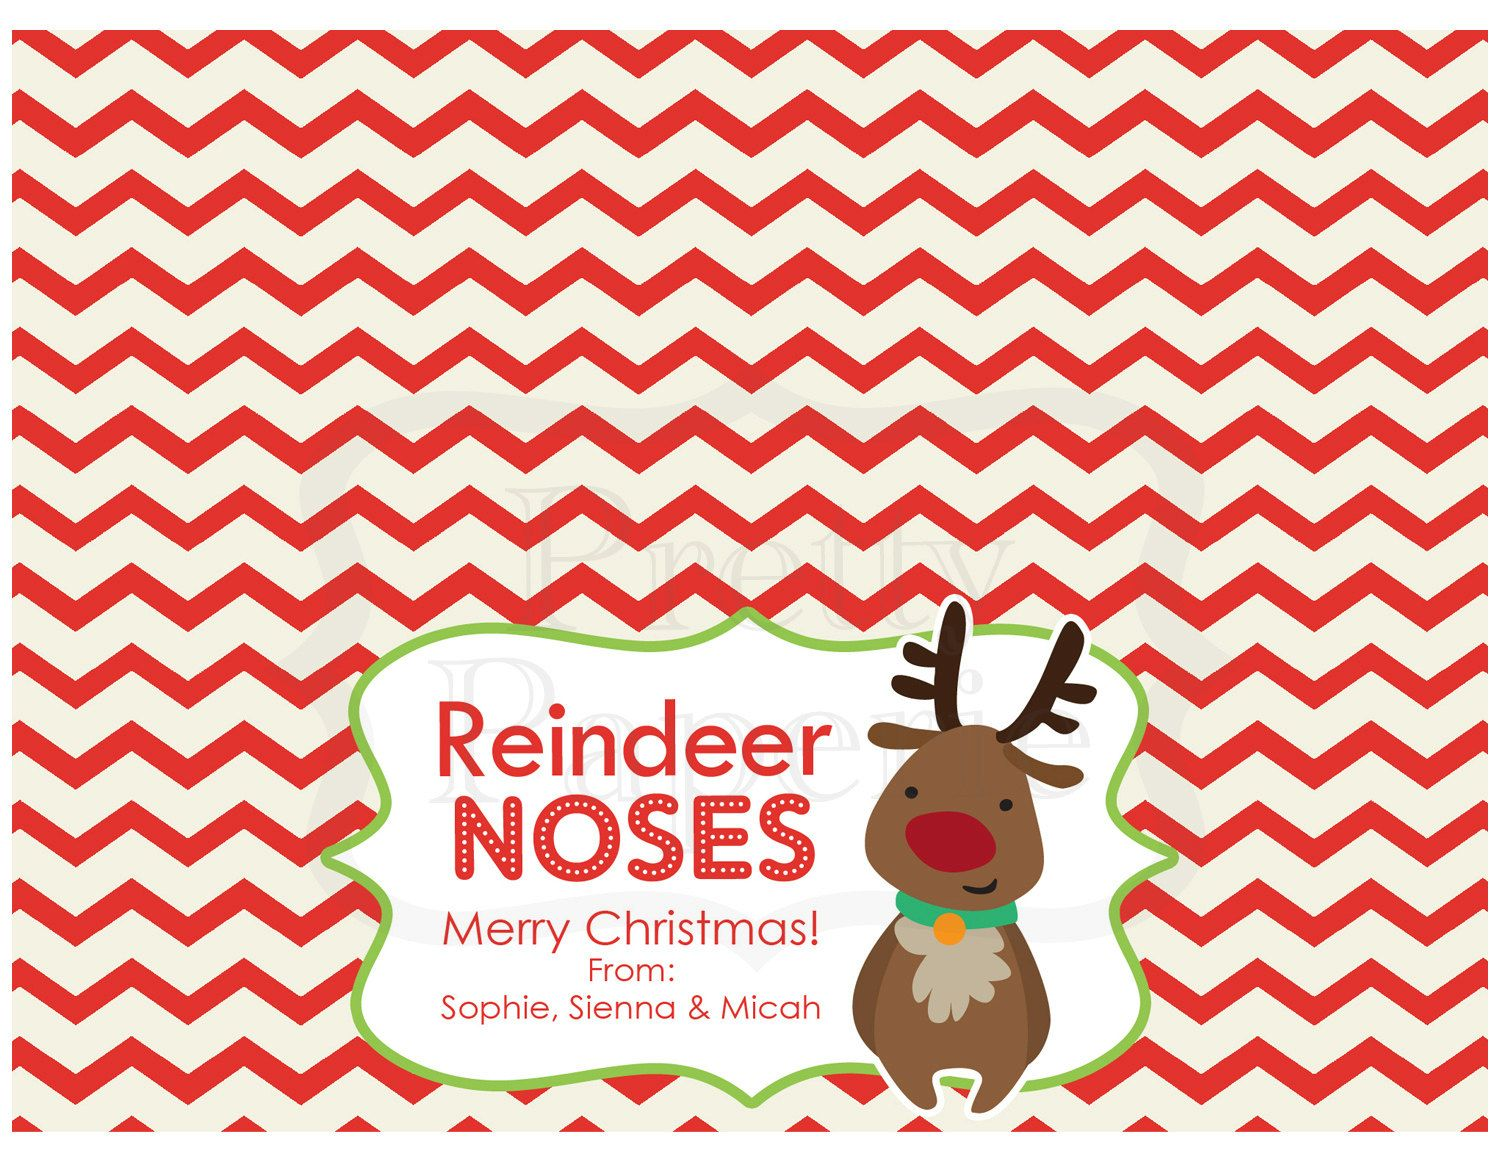 picture about Reindeer Noses Printable titled Xmas Address Bag Tags: Reindeer Noses - Printable PDF